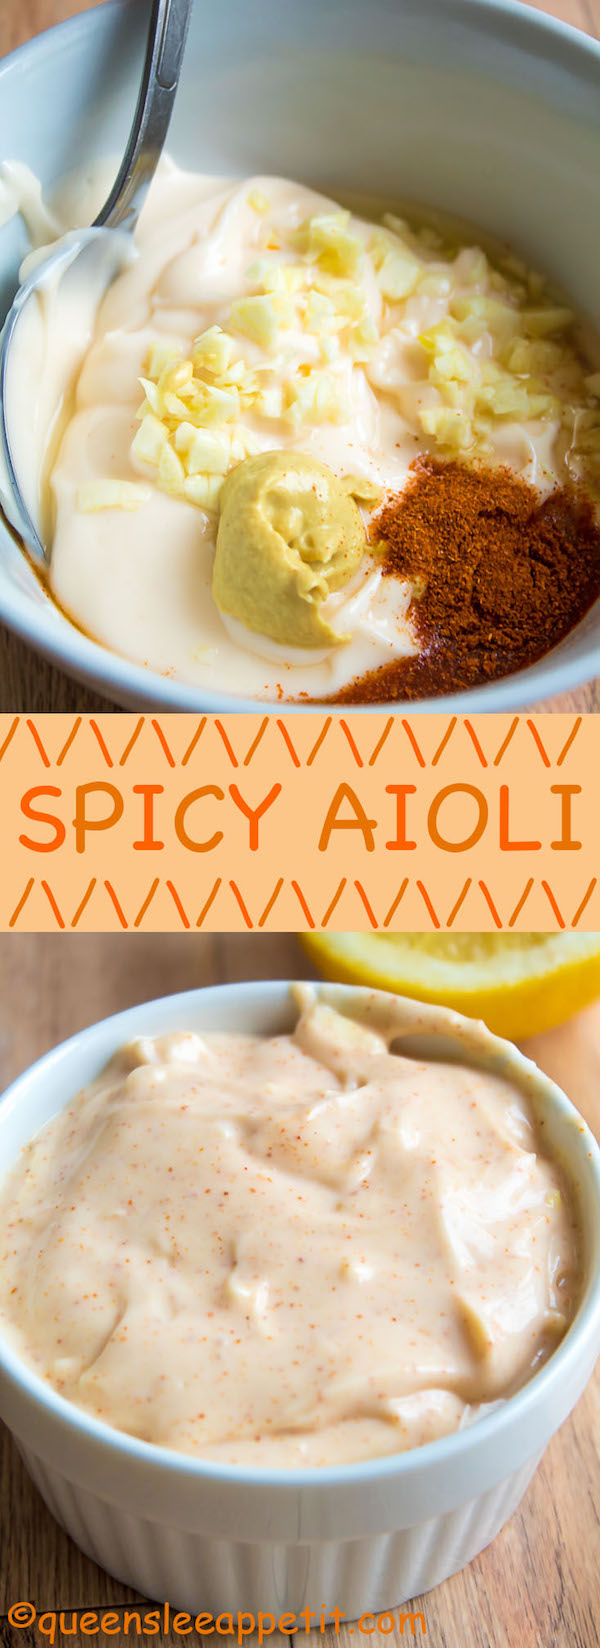 This Spicy Aioli is super quick and easy to make! This creamy and spicy sauce is the perfect spread for sandwiches and hamburgers, and it makes a great dip for fries and onion rings!